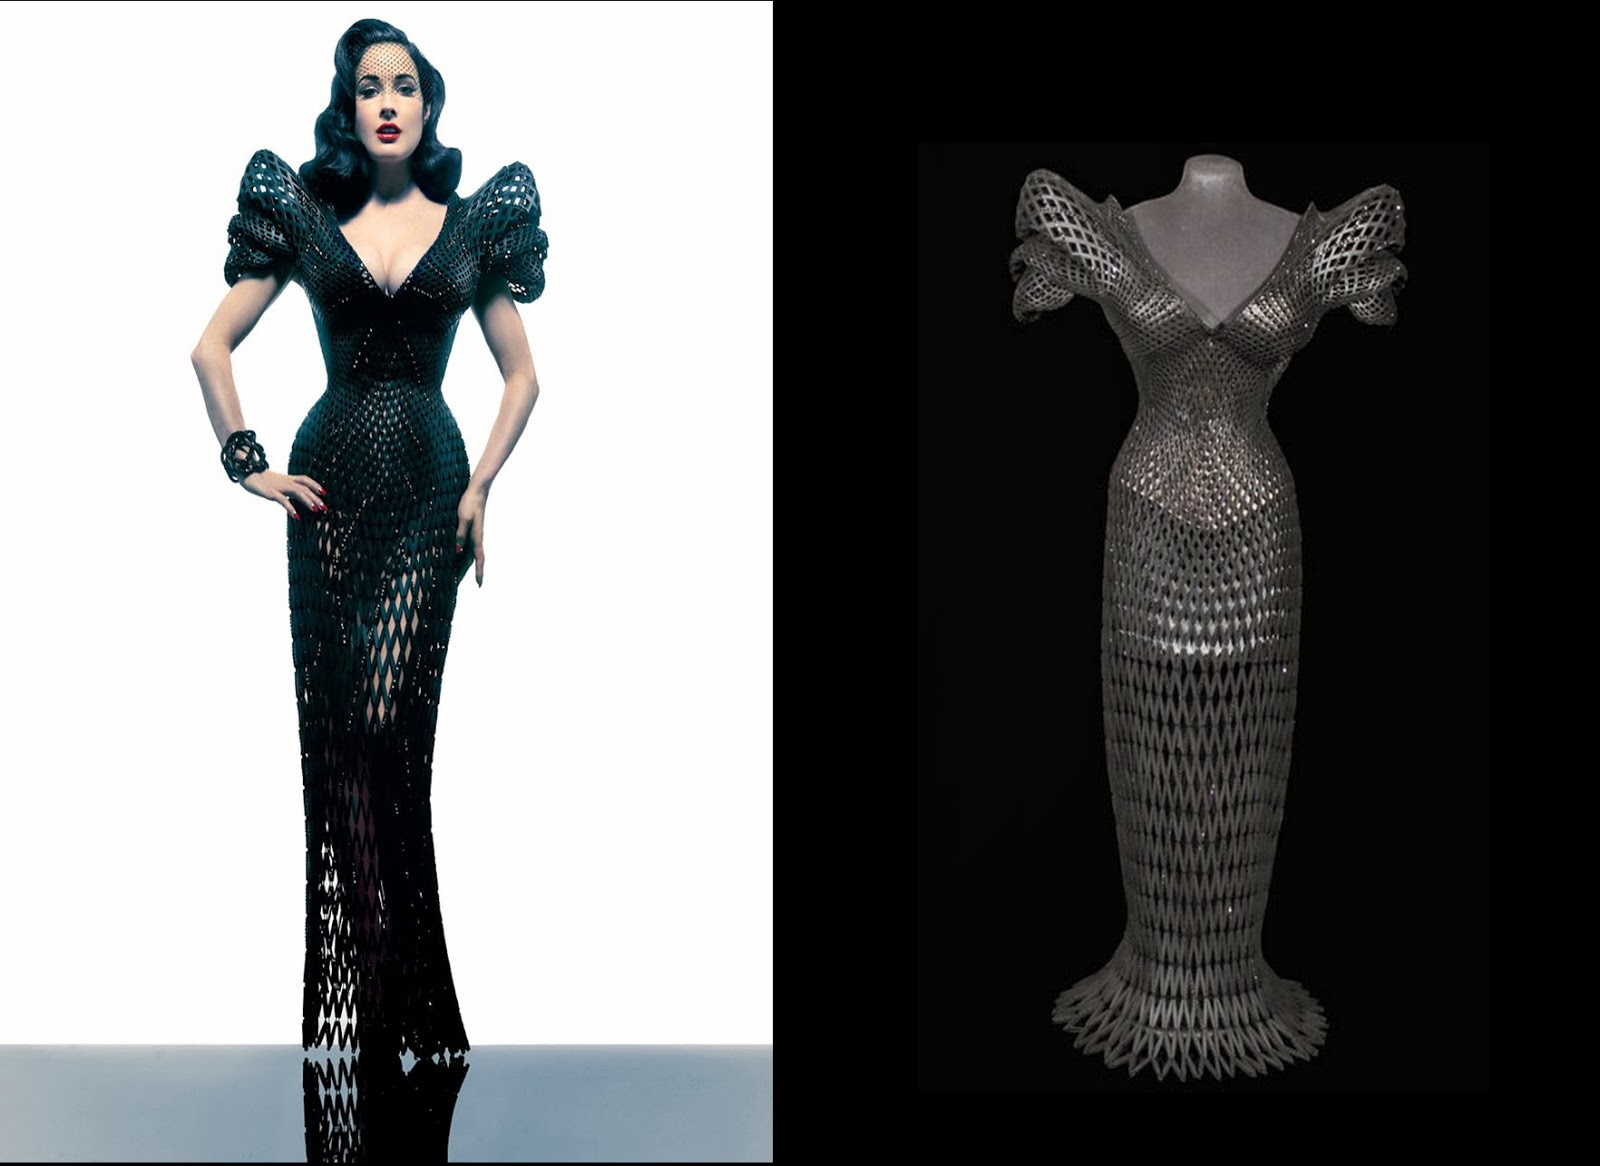 3D printing in the Fashion industry